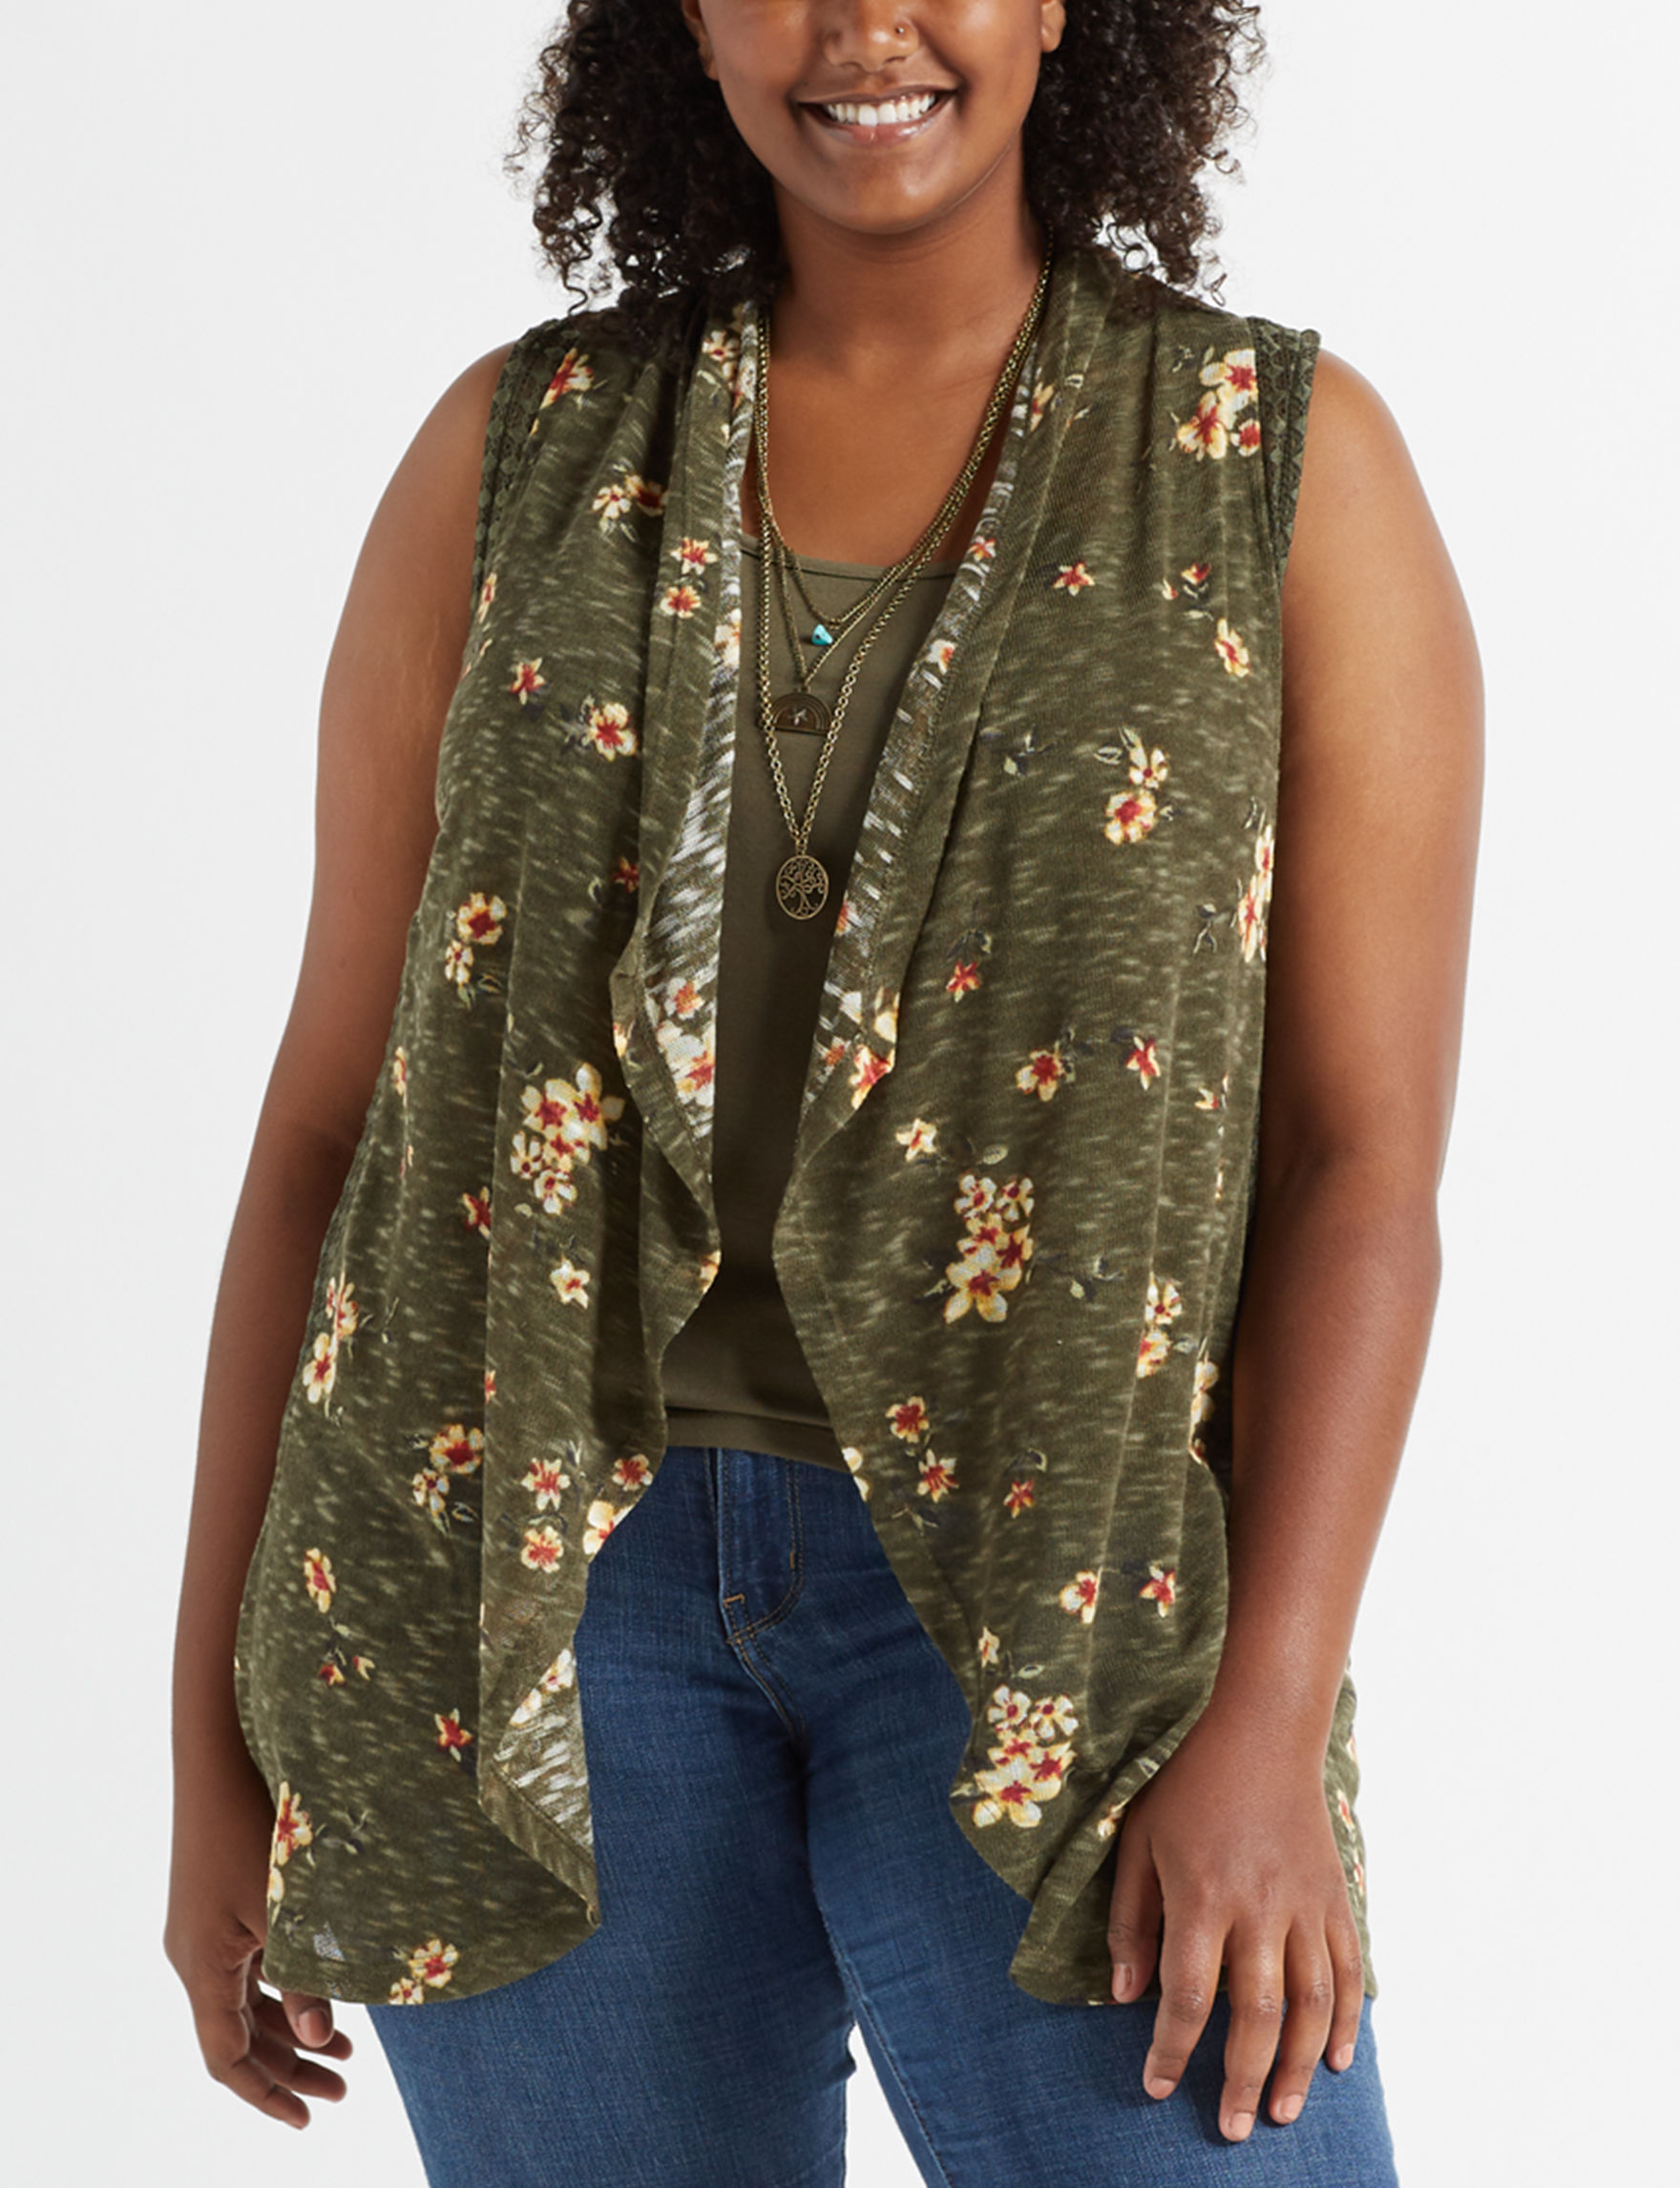 Justify Olive Kimonos & Toppers